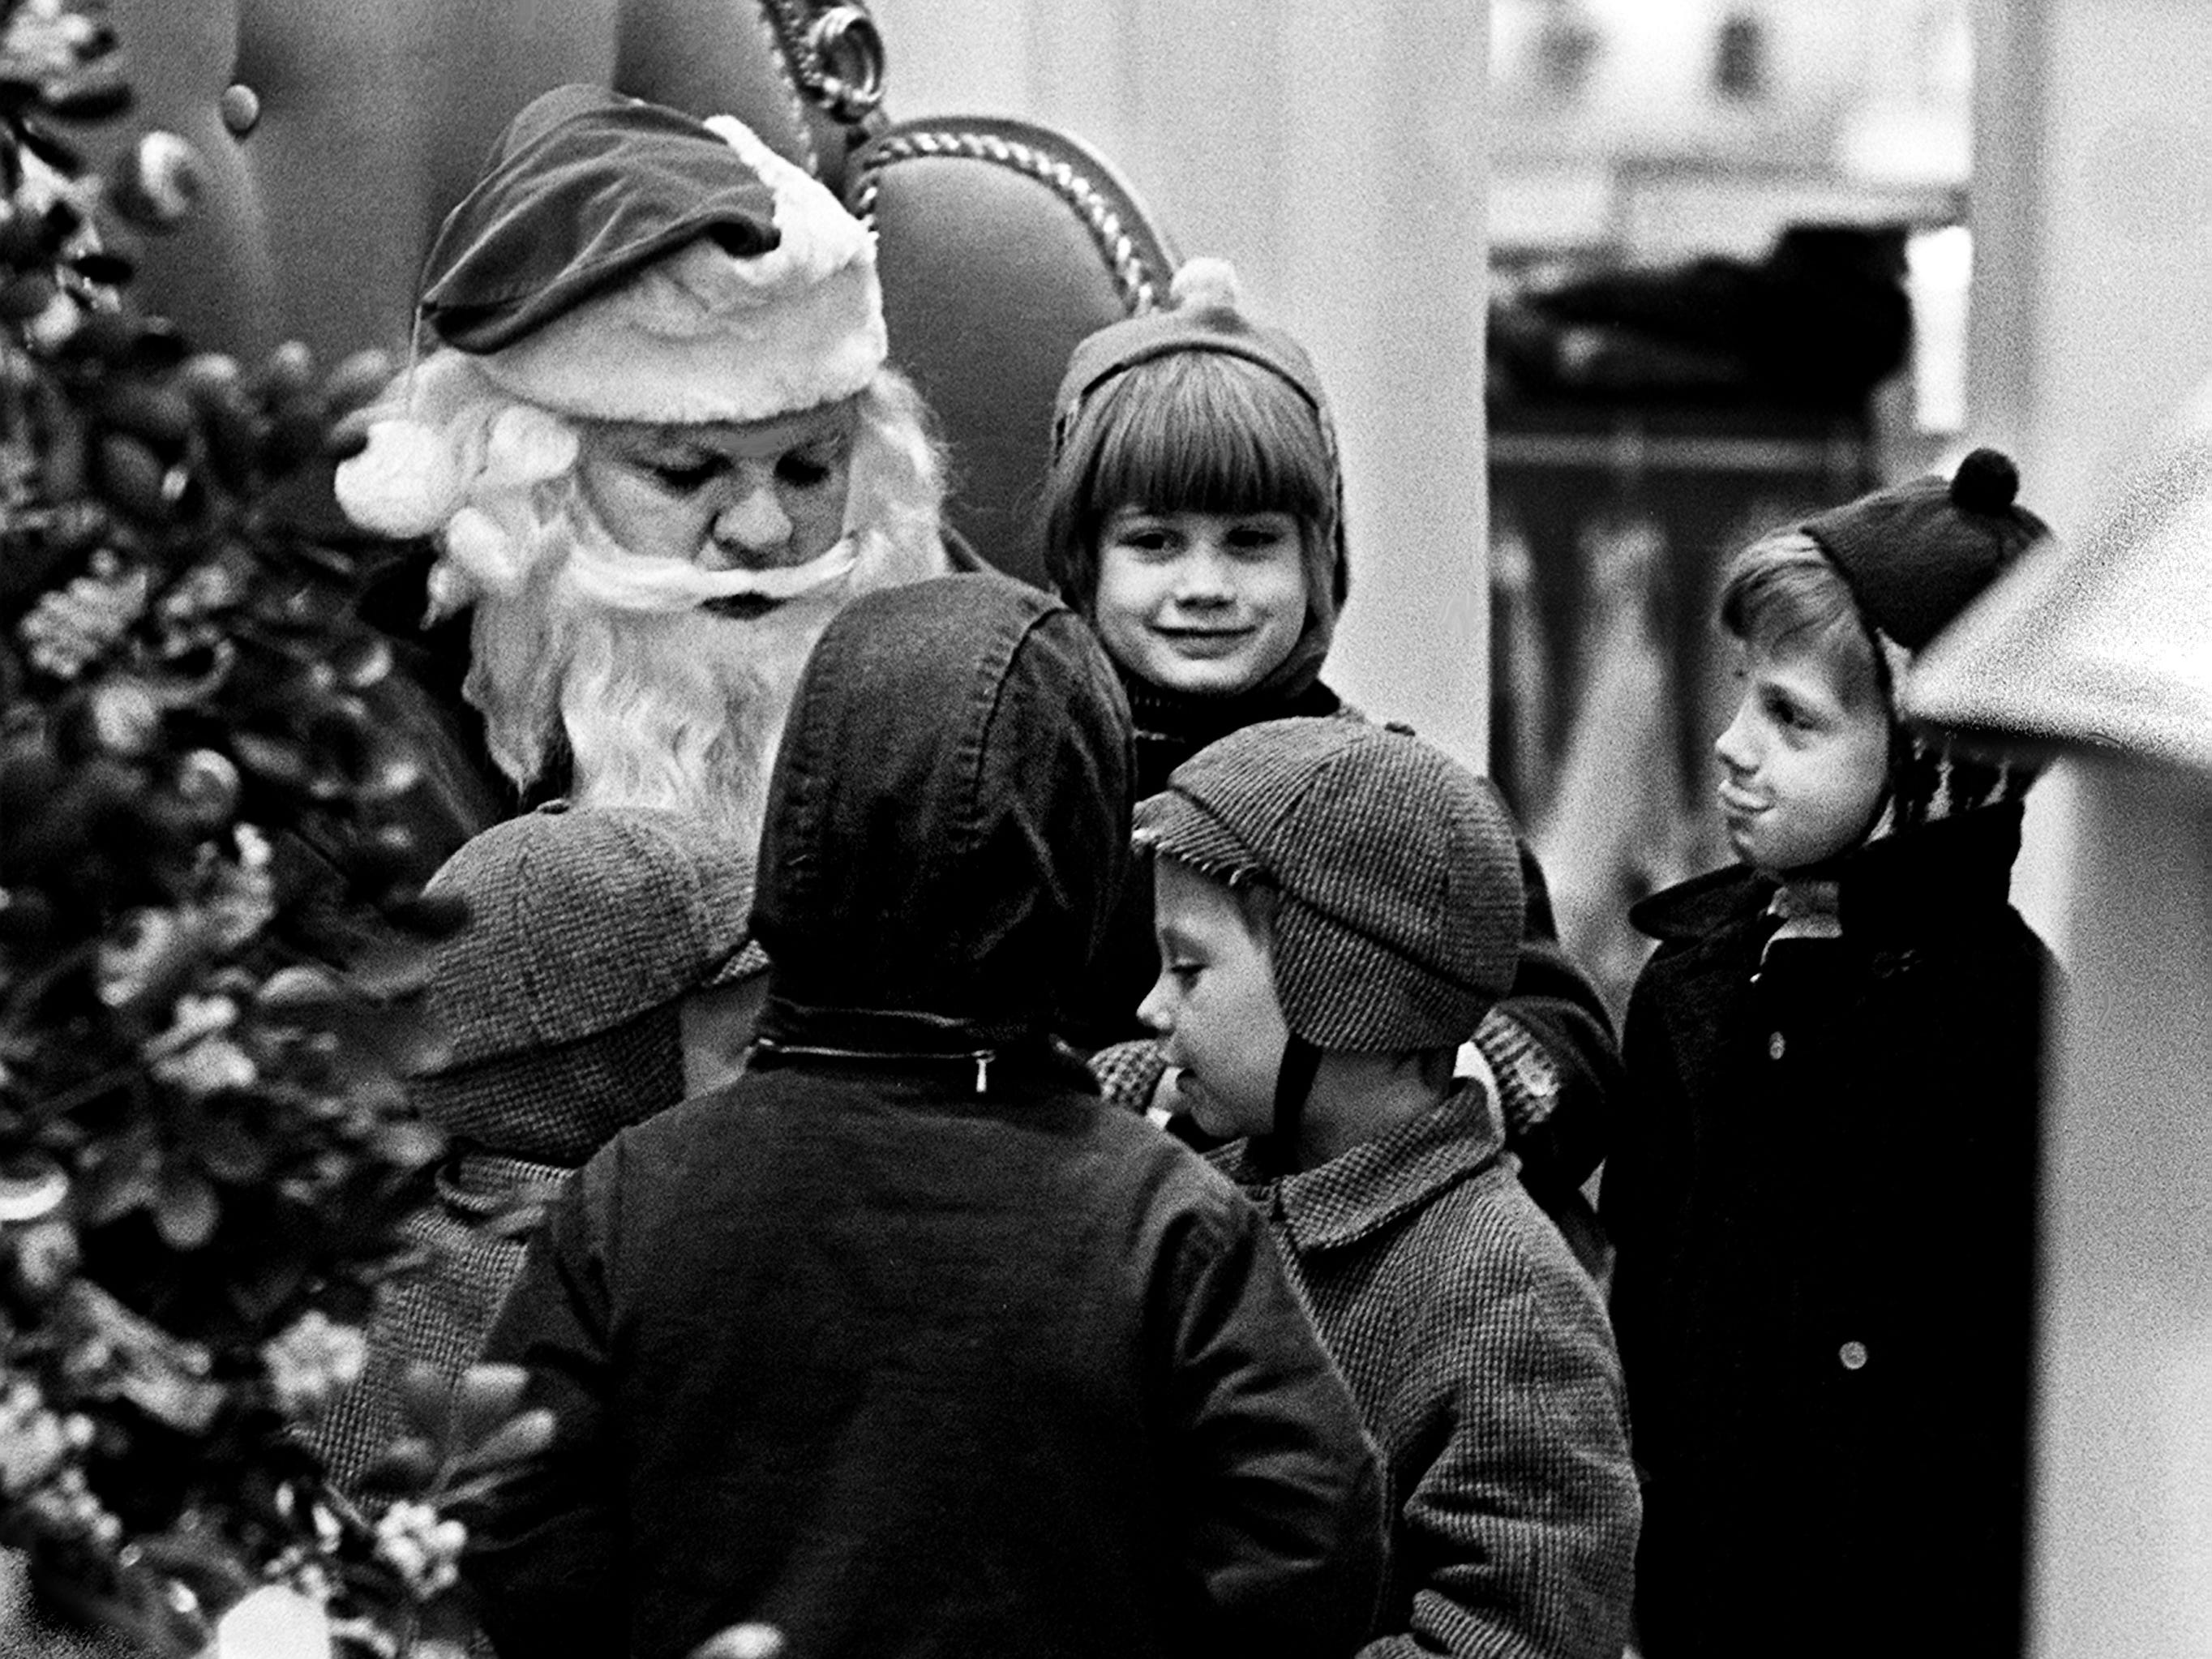 Seven-year-old Cynthia Anderson, center, daughter of Mrs. Lacie Anderson of Berry Street, sits on the lap of Santa Claus as other kids wait their turn at a downtown Nashville department store Dec. 7, 1968.